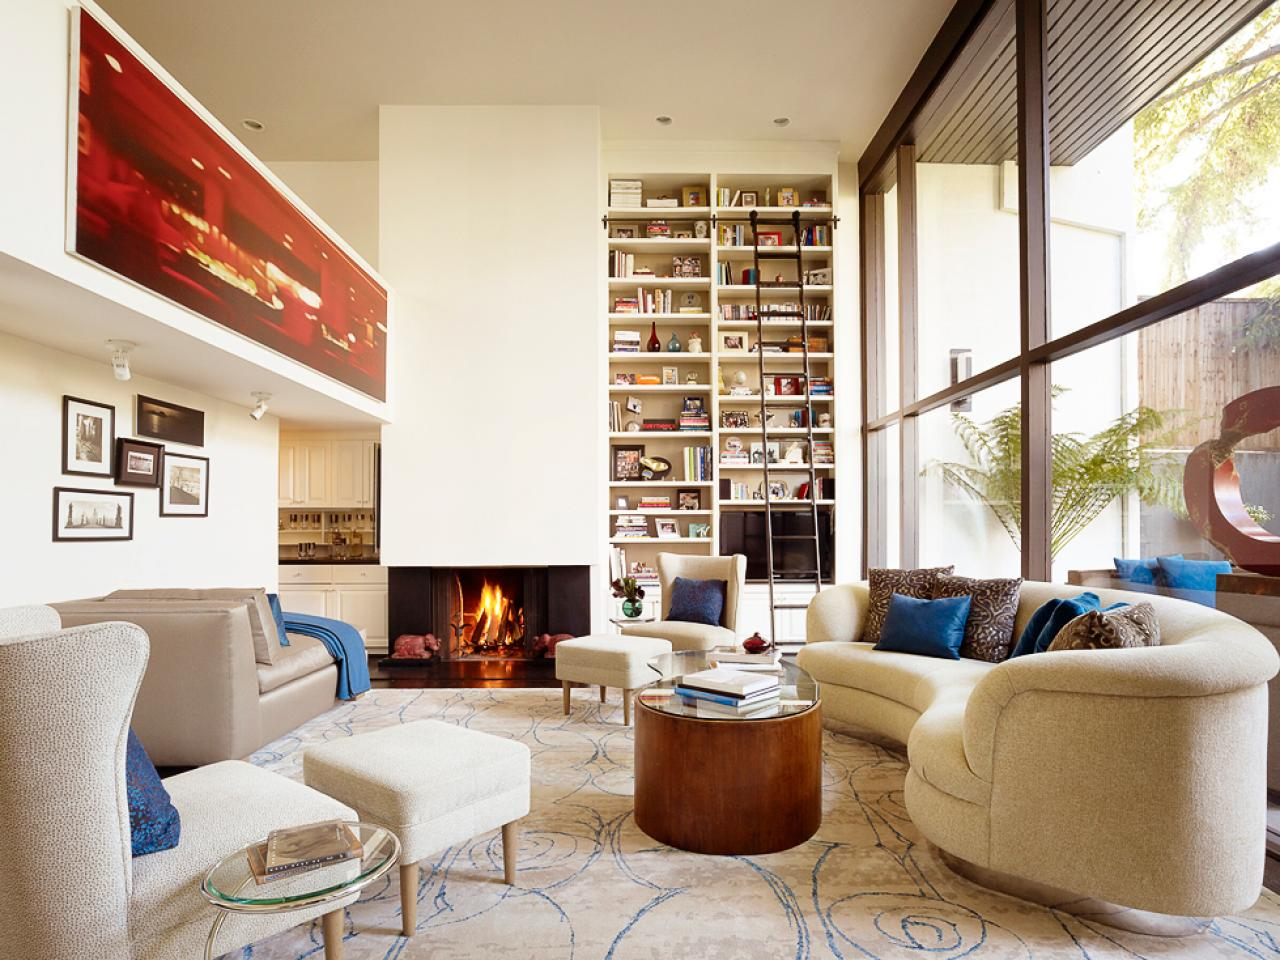 The Wonderful Living Room Layout With Curve Sofa And High Wall Bookshelves  Near Modern Fireplace Great Ideas